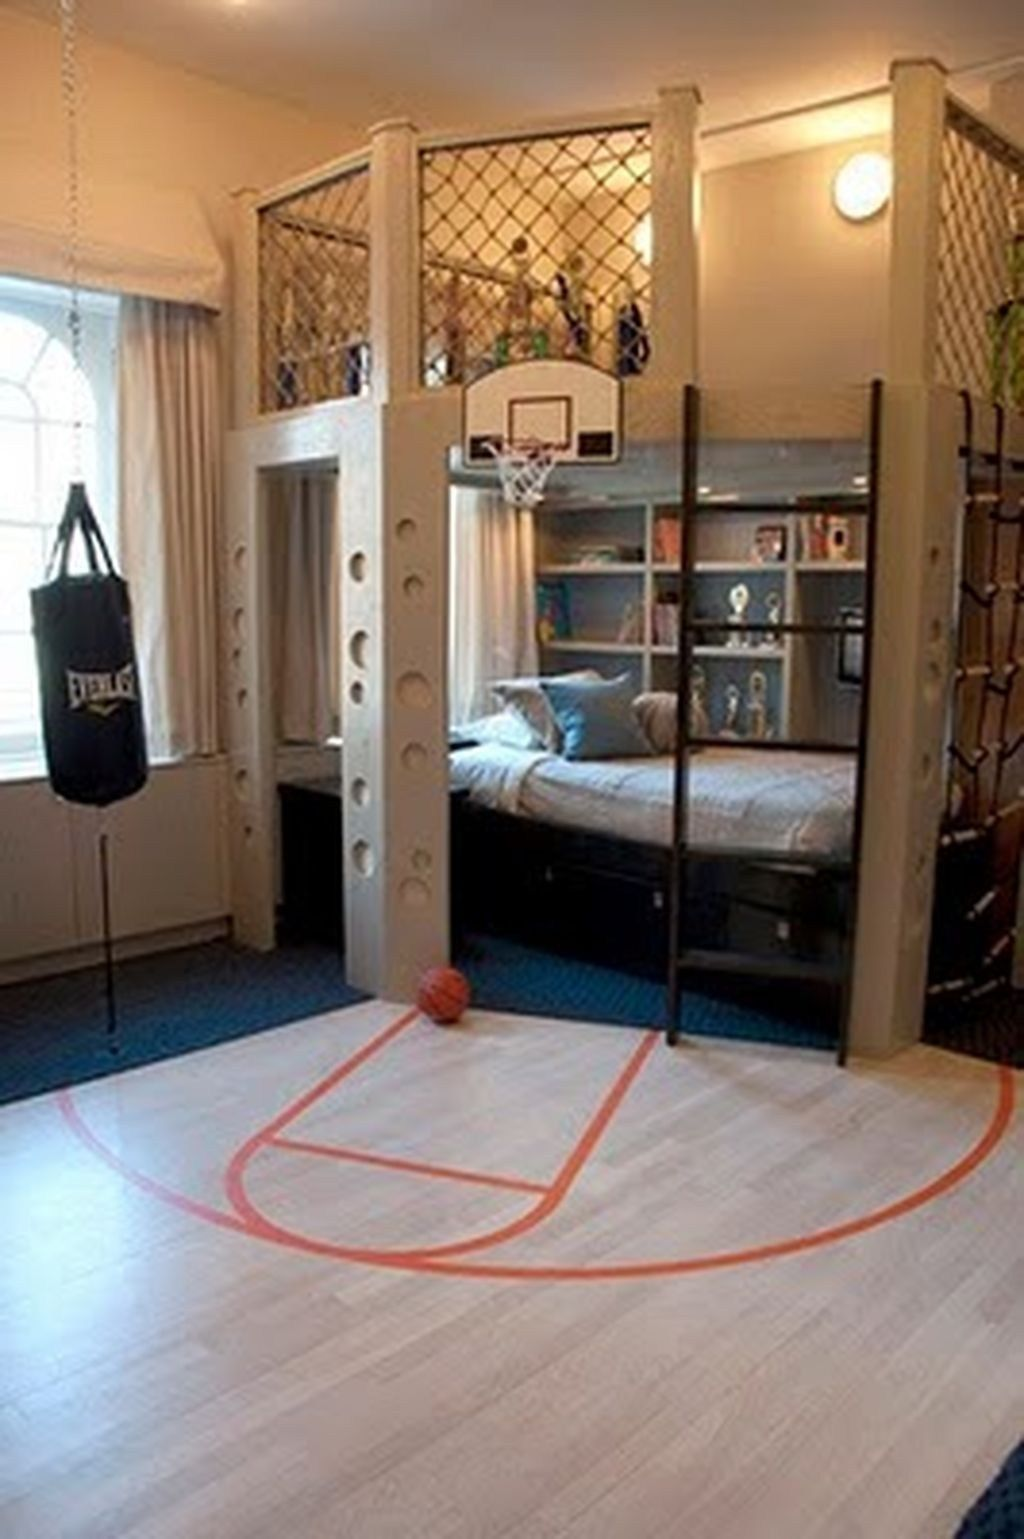 23 Kids Room Ideas Creative Design And Decor For Kids